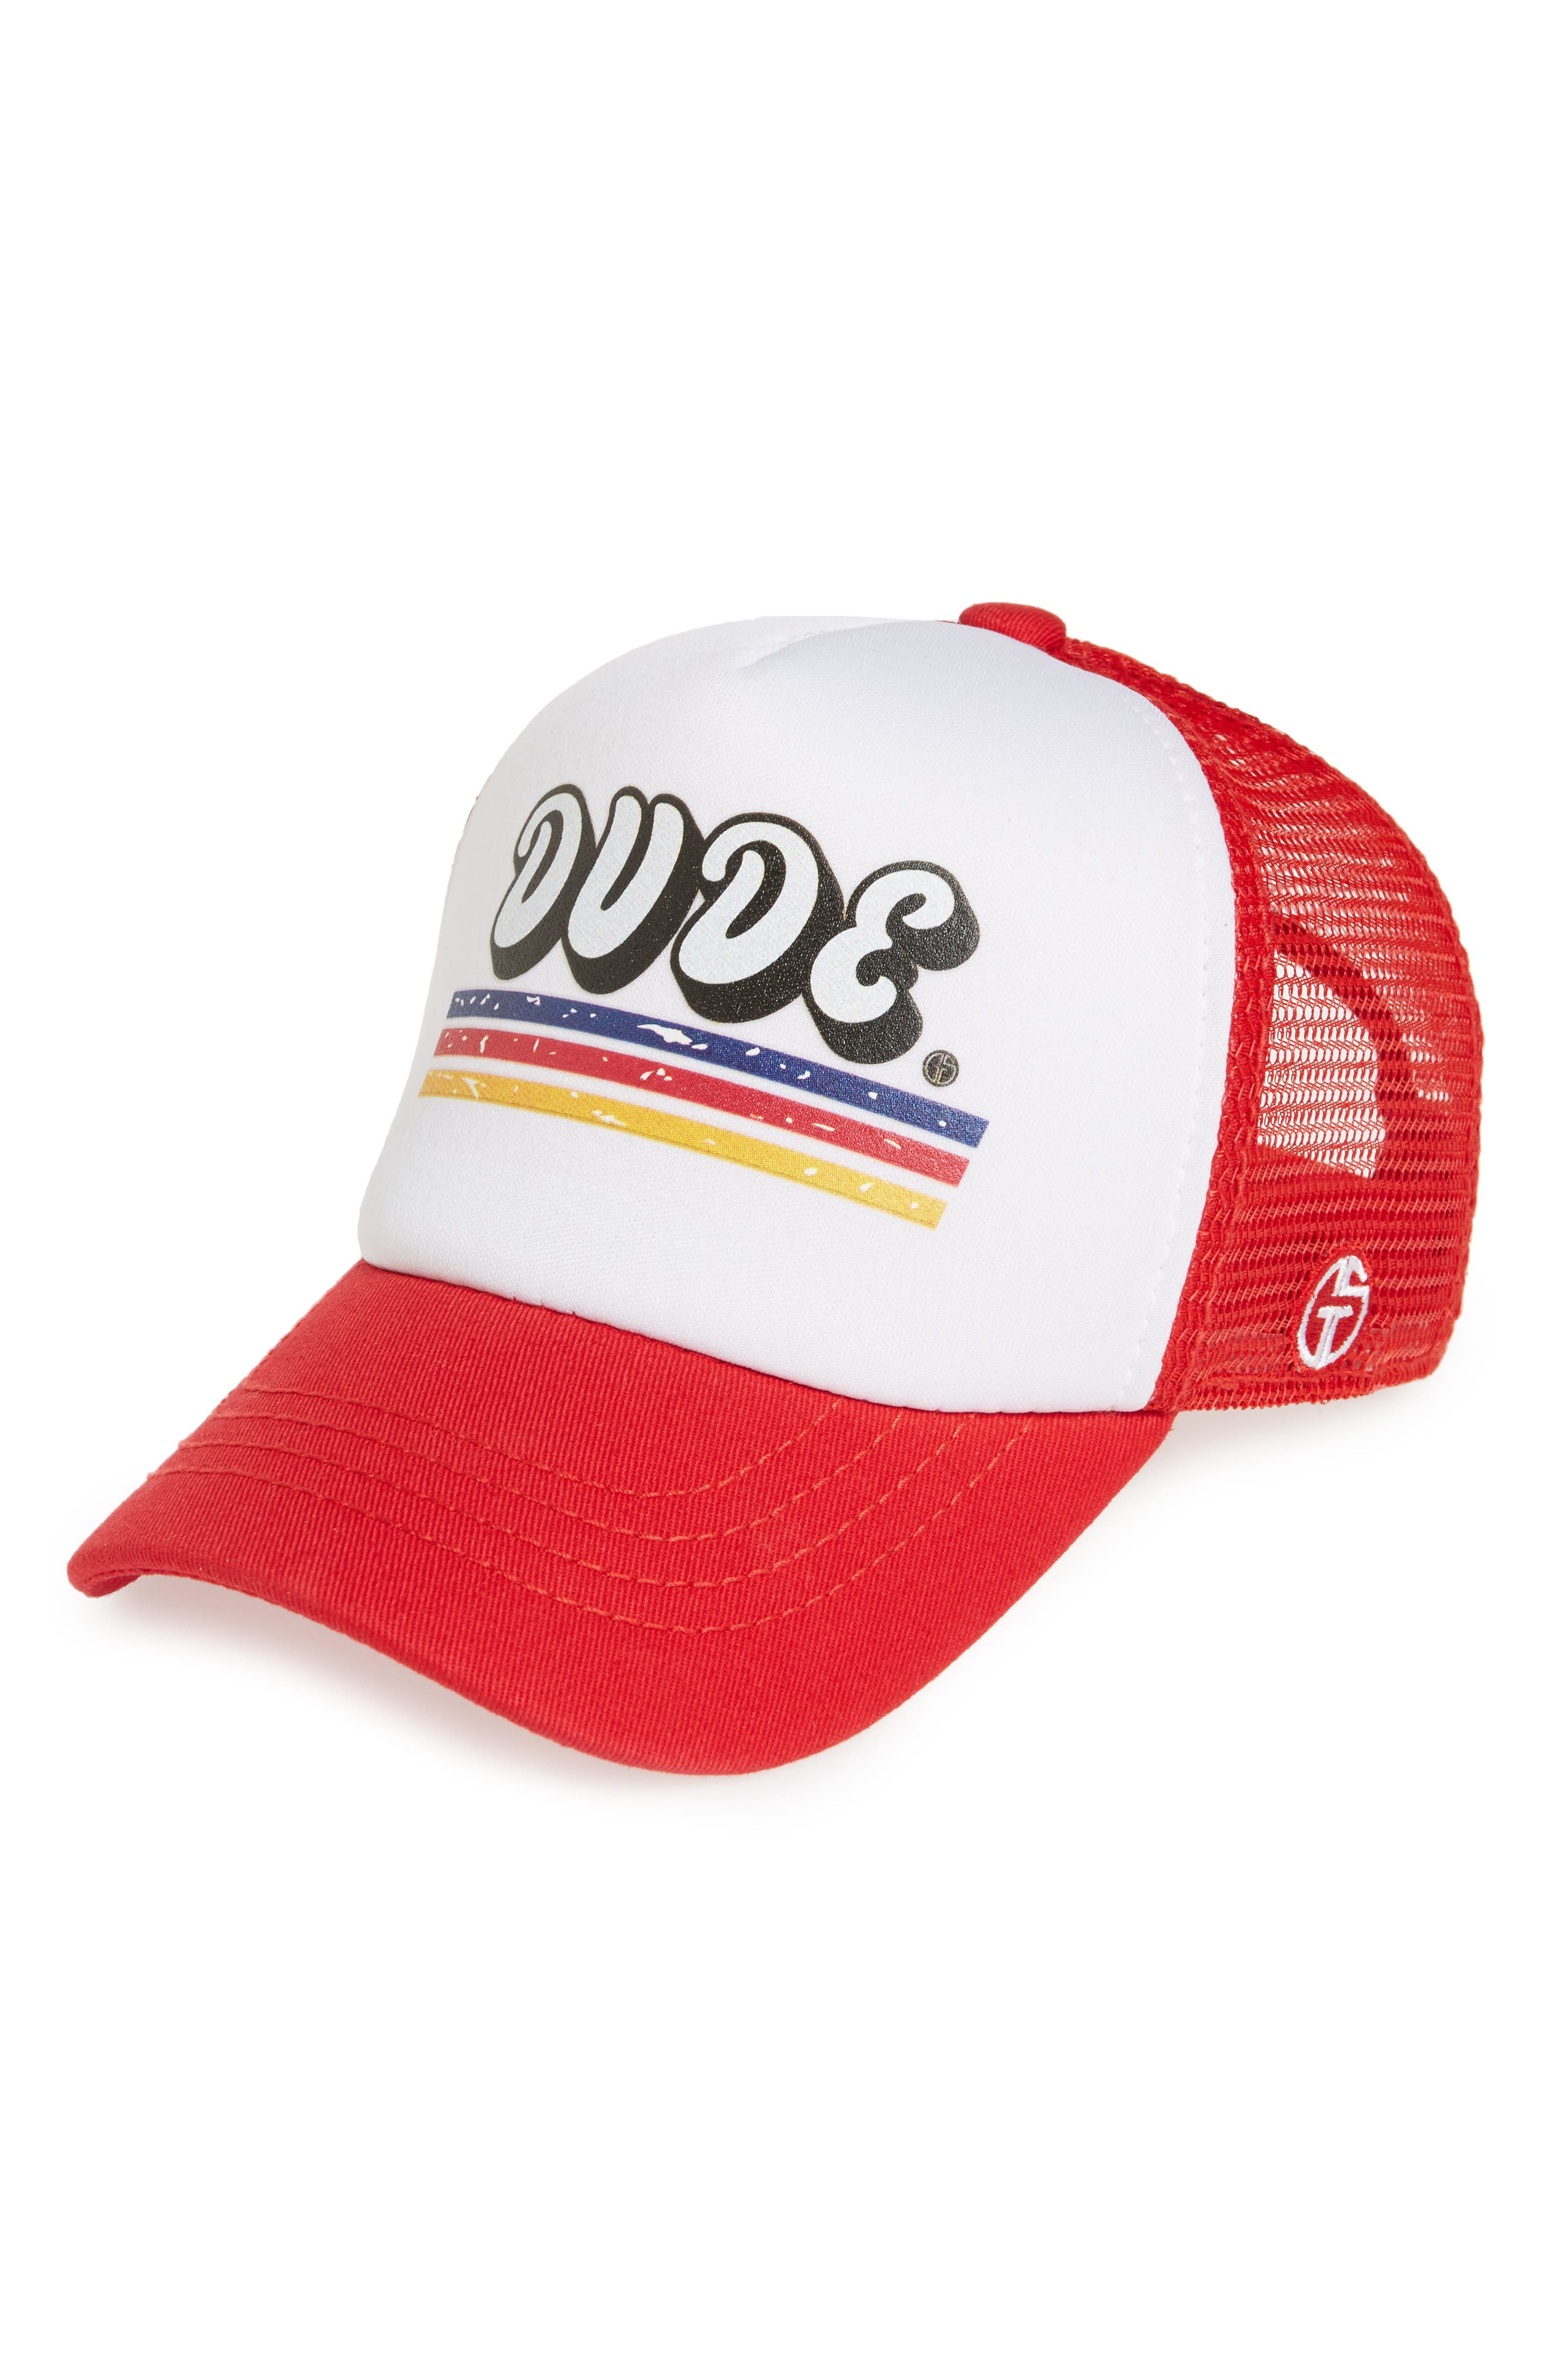 Dude Trucker Hat,                         Main,                         color, Red/ White